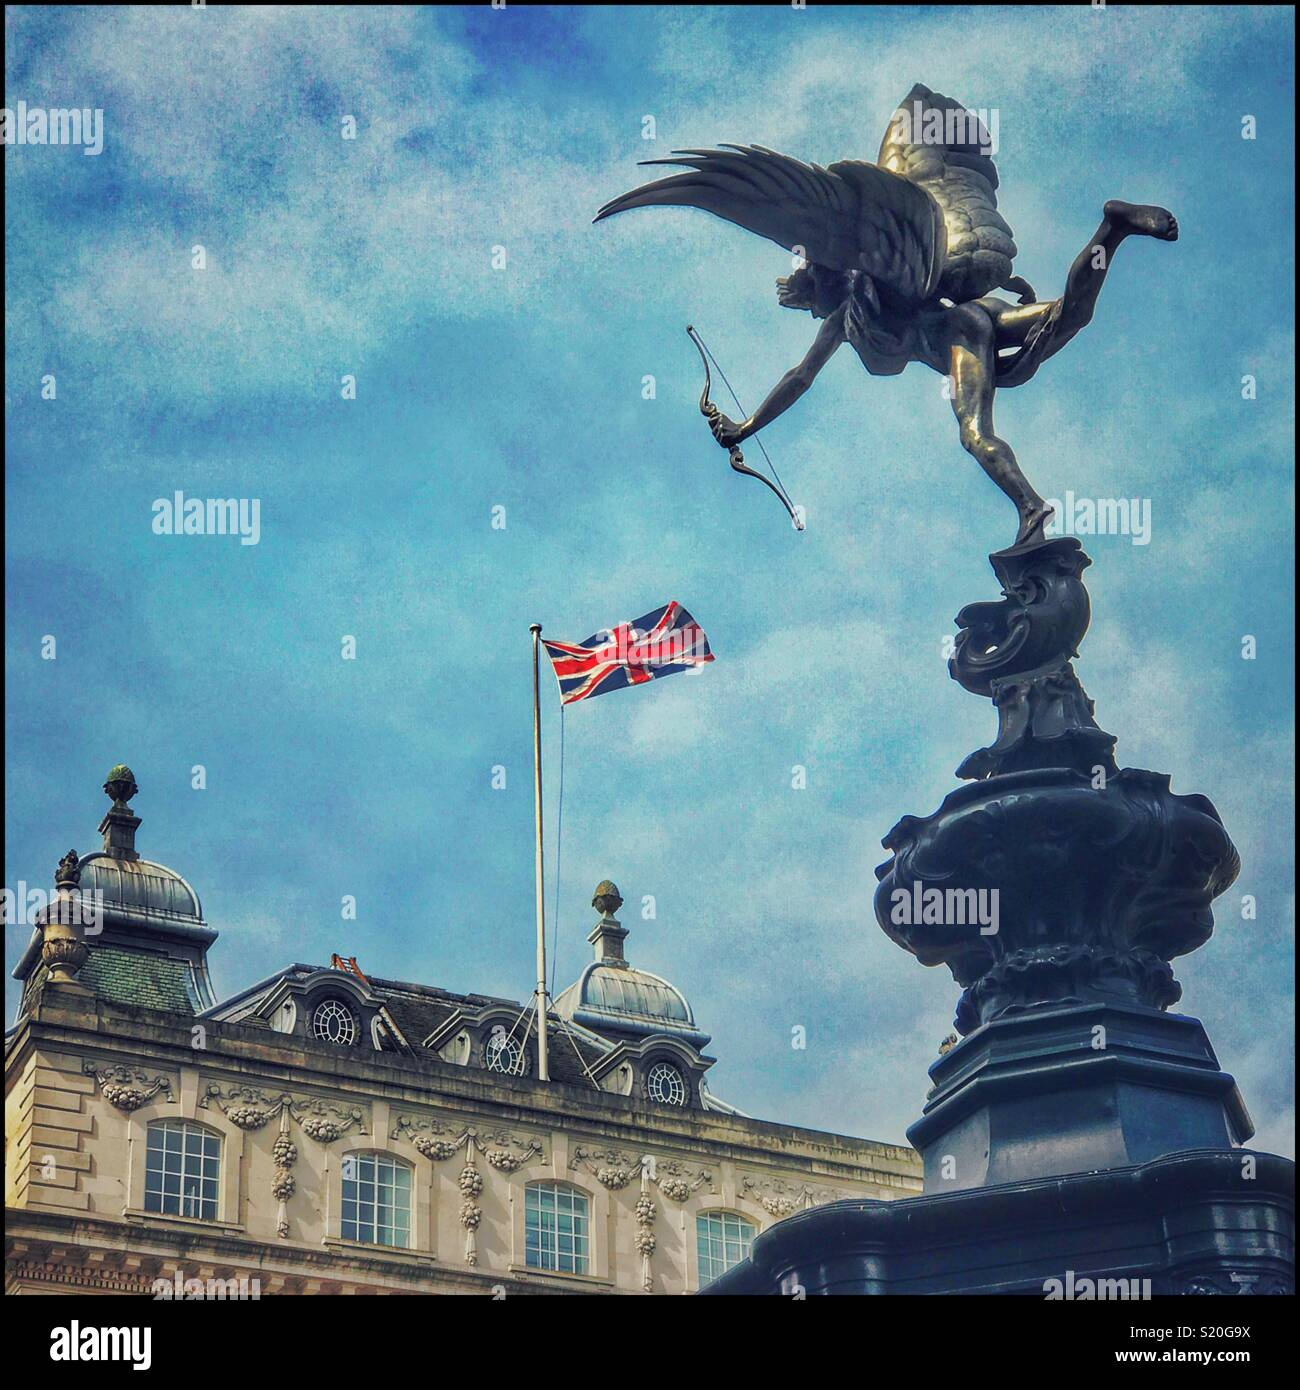 A Statue Of Anteros or The Angel of Christian Charity that sits atop the Shaftesbury Memorial Fountain in Piccadilly Circus, London. Or possibly Eros has shot an arrow at The Union Jack Flag?! © C.H. - Stock Image